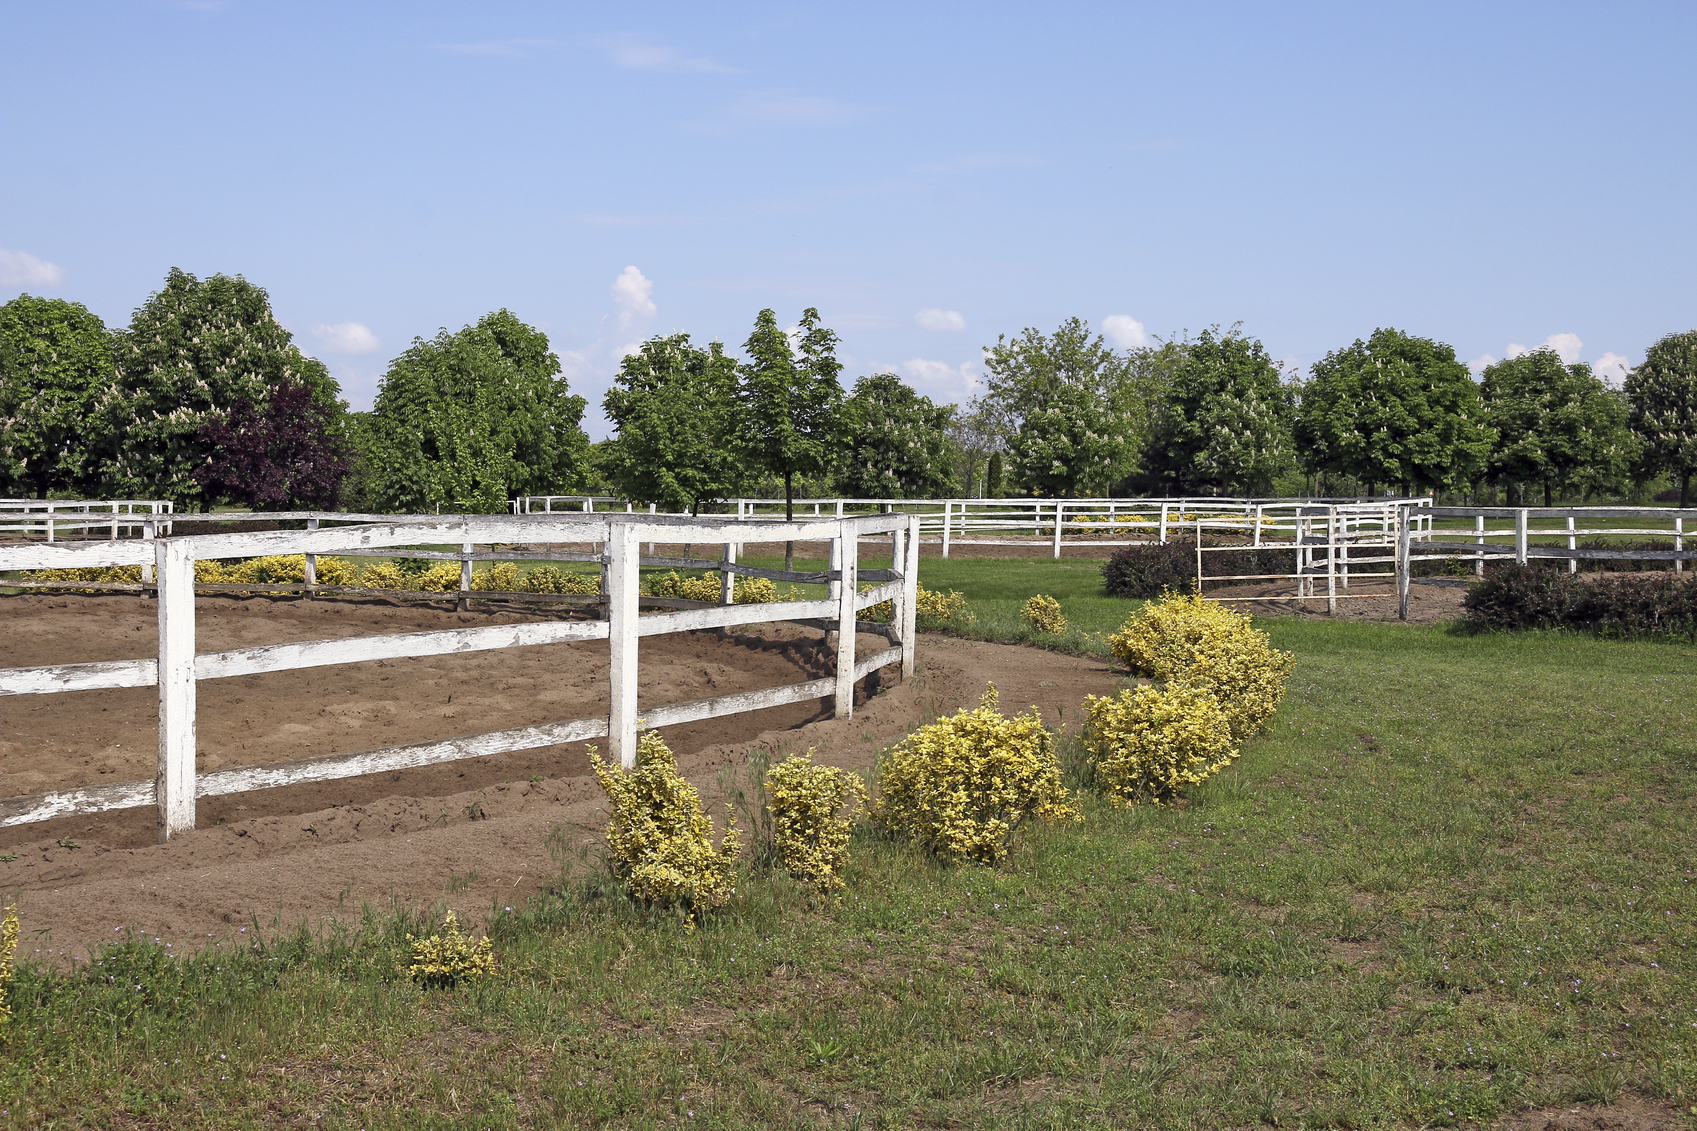 ranch with white corral for horses